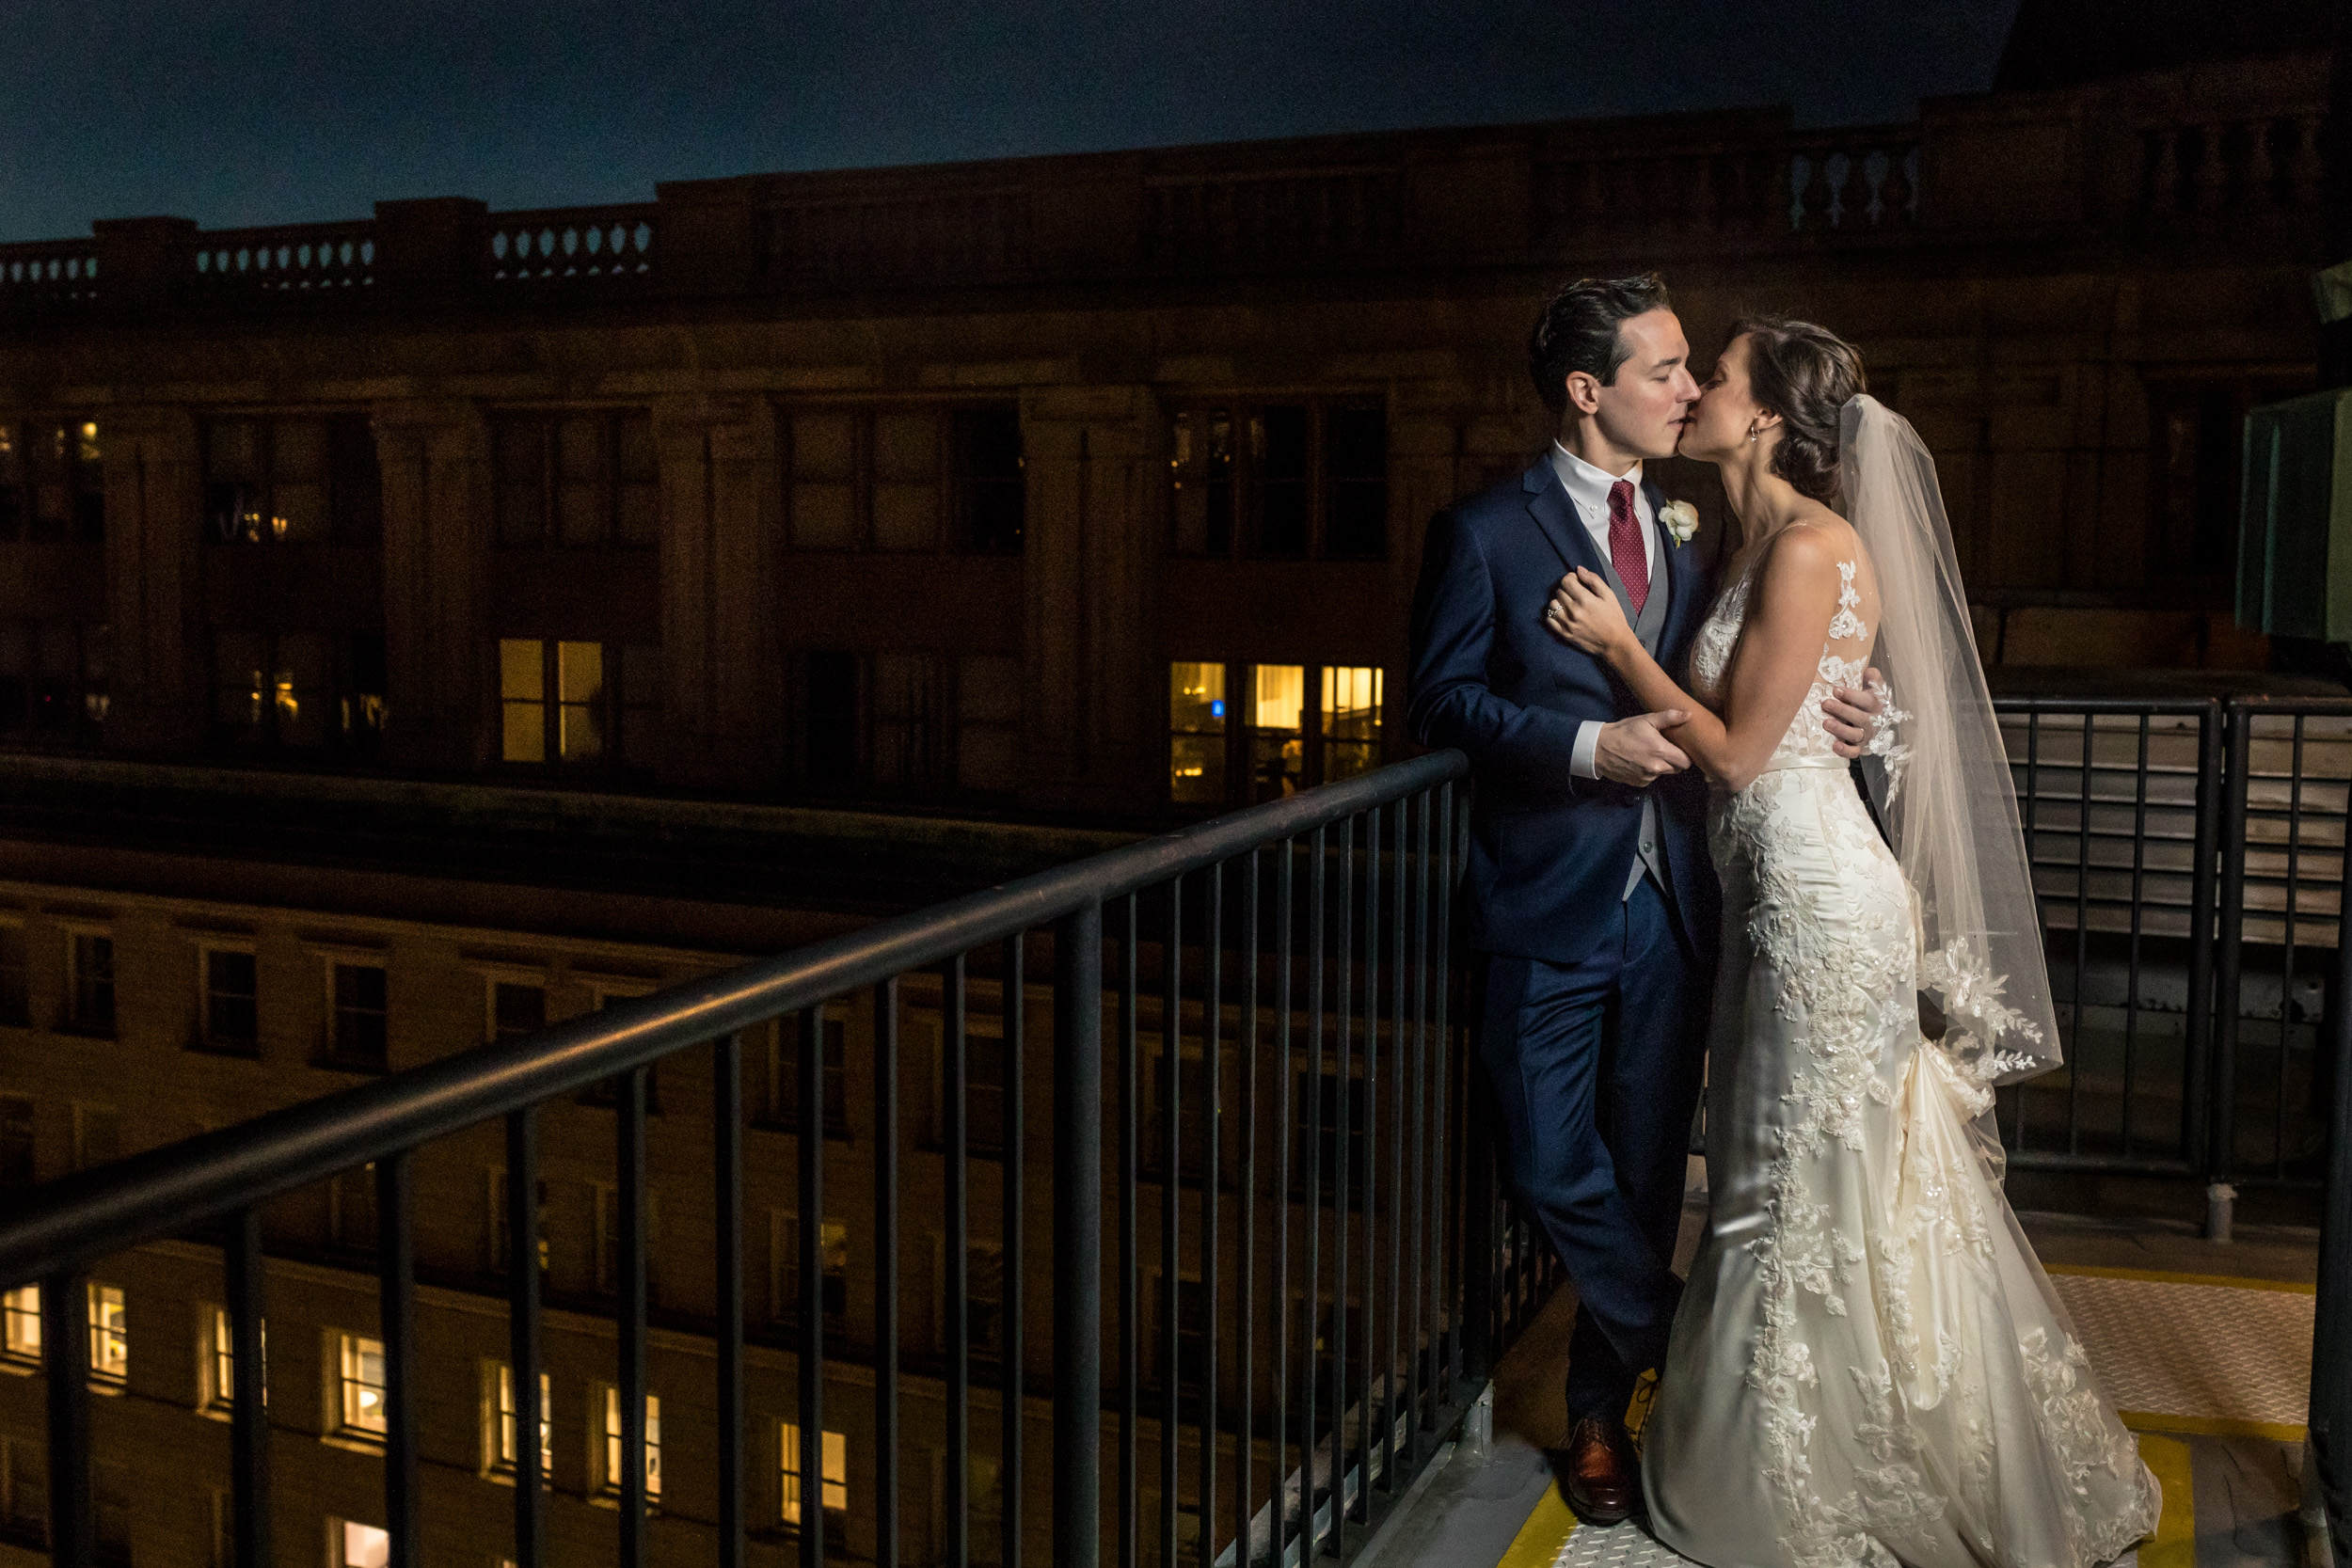 redwood and rye_omni parker house wedding photography_boston wedding photographer-81.jpg